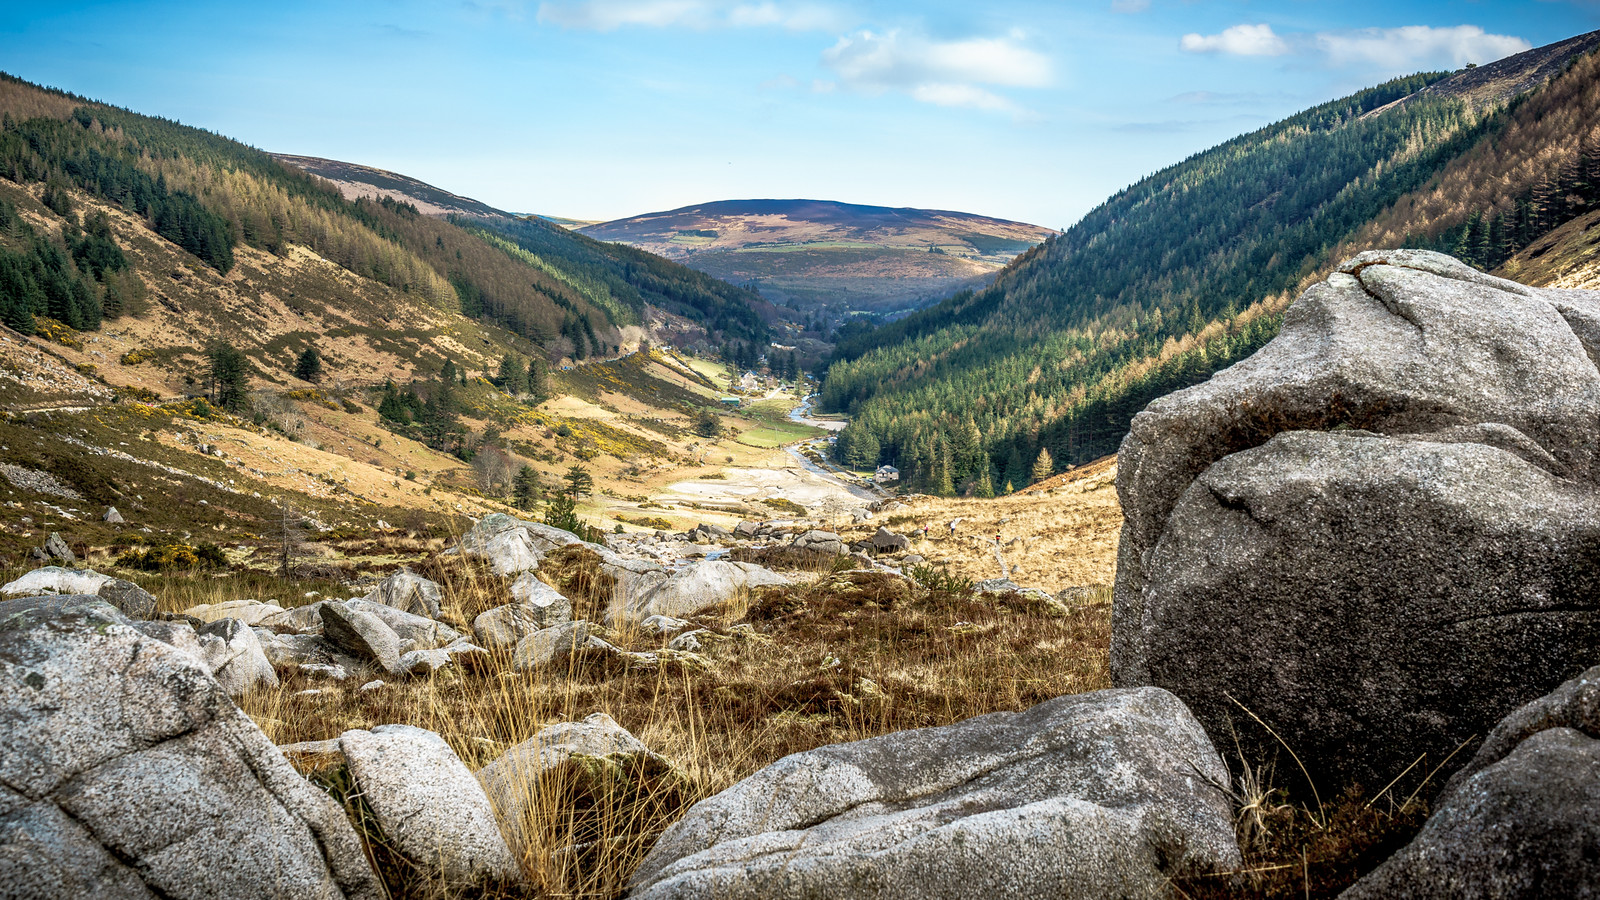 Glendalough, Wicklow, Ireland - Landscape photography